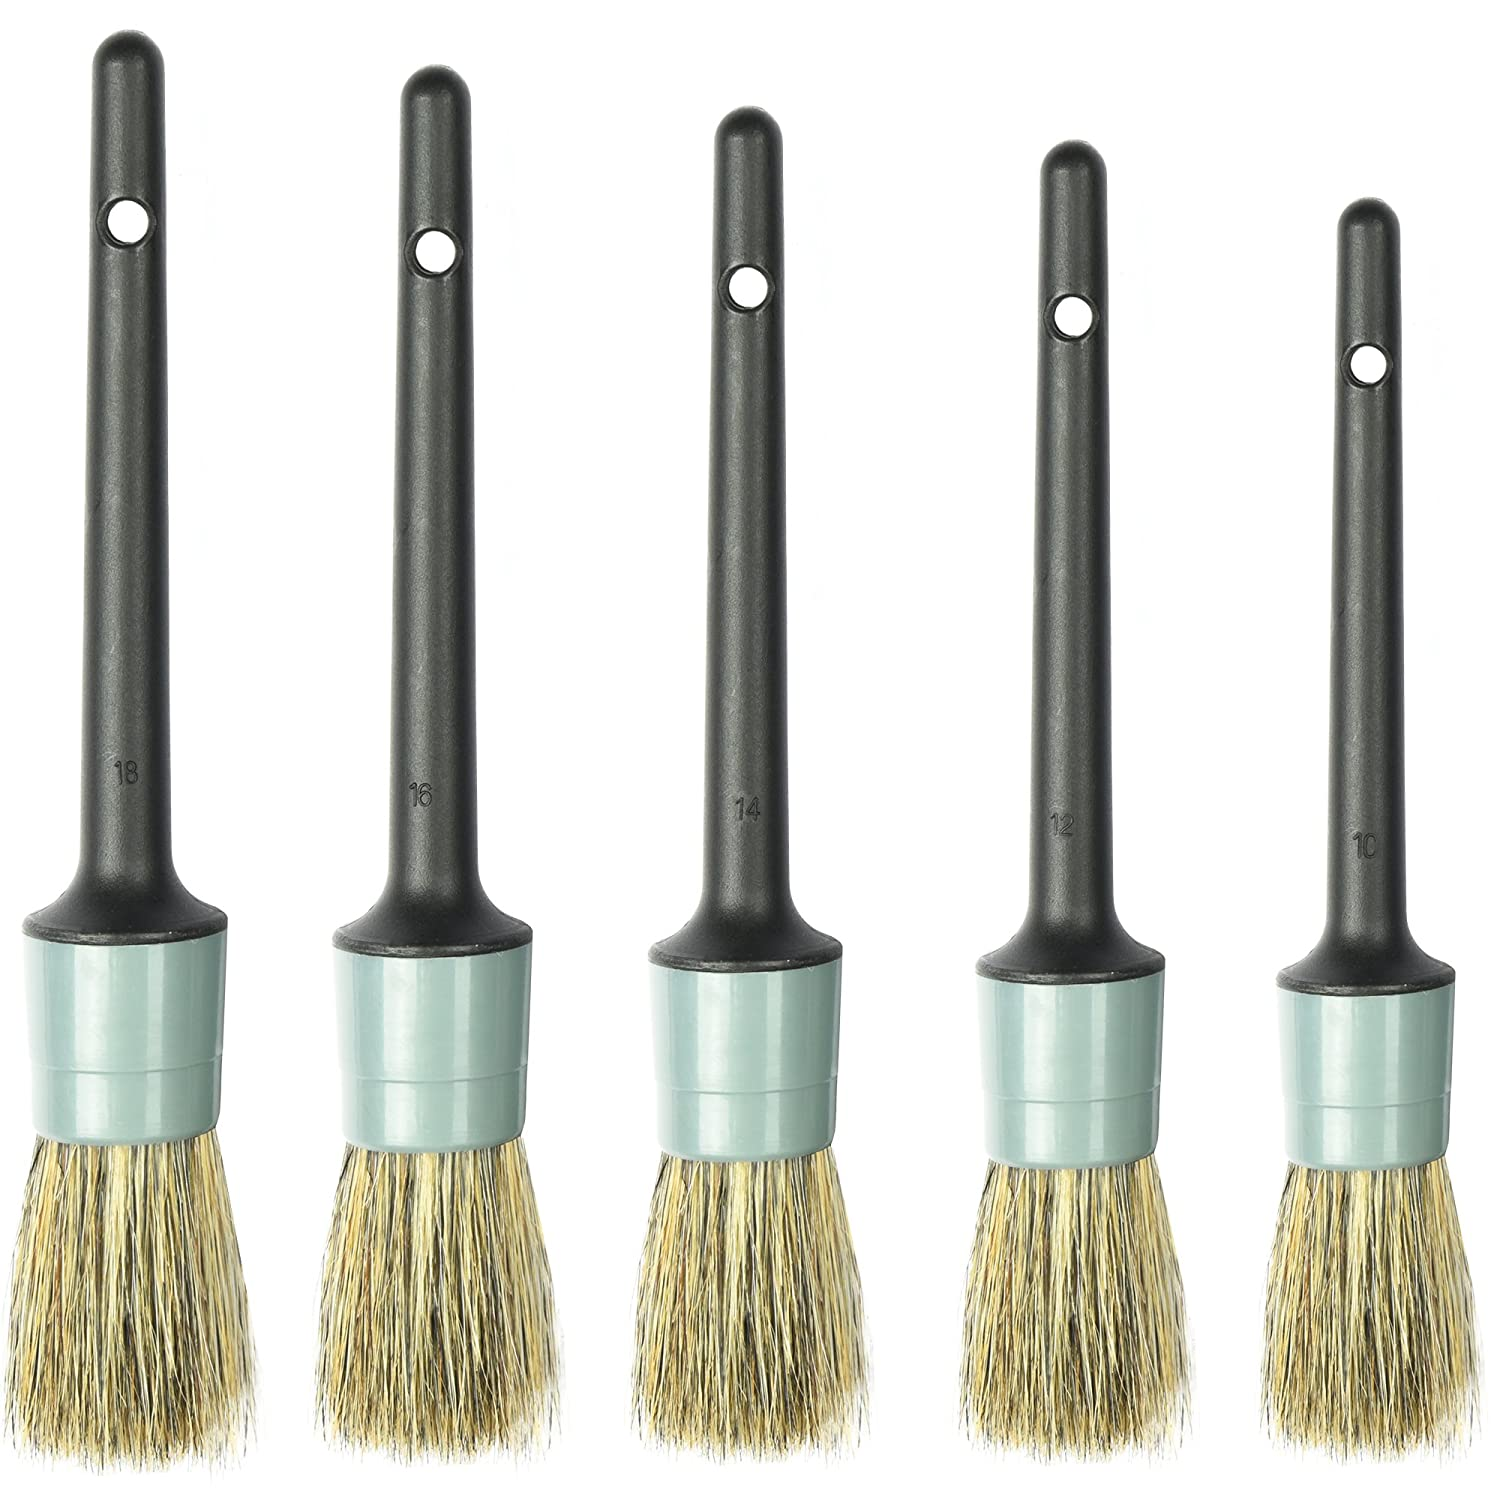 Master Detailing Brush Set - 5 Different Sizes - Free Microfiber Towel - Premium Natural Boar Hair - Plastic Handle - No Shed Bristles - For Cleaning Engine, Wheel, Interior, Air Vent, Car, Motorcycle TAKAVU